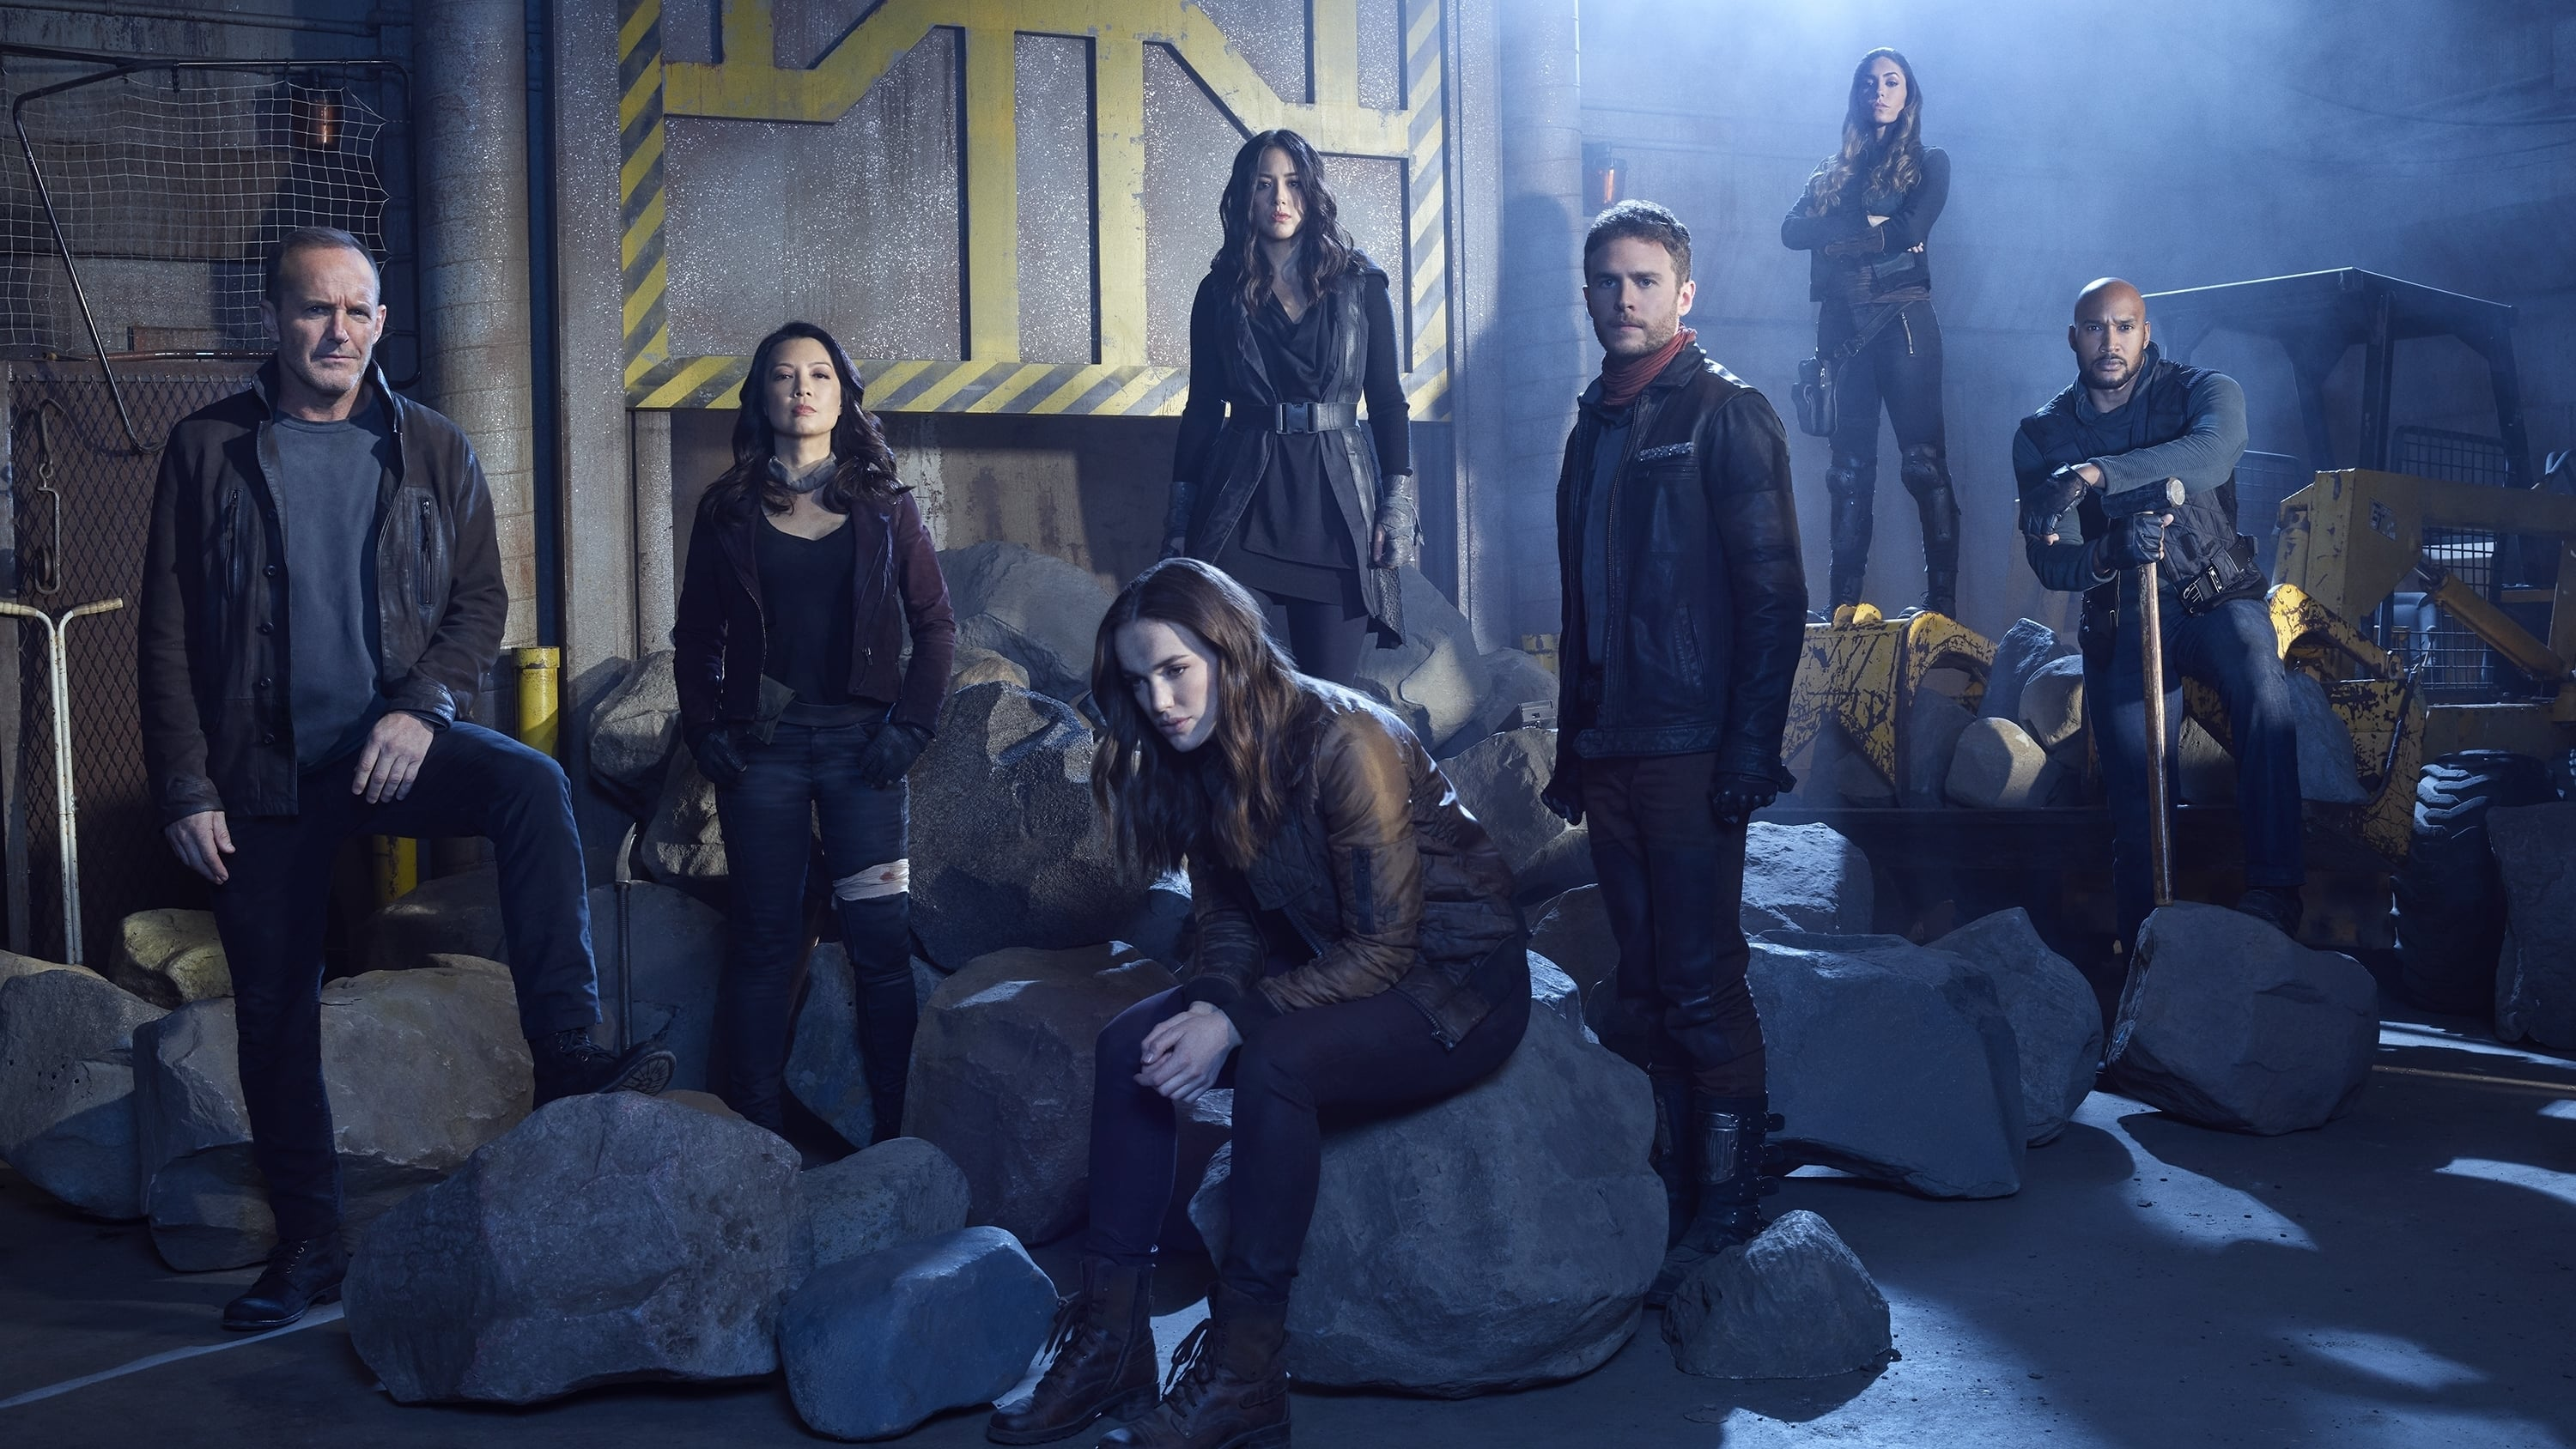 Marvel's Agents of S.H.I.E.L.D.: Season 6 Episode 11